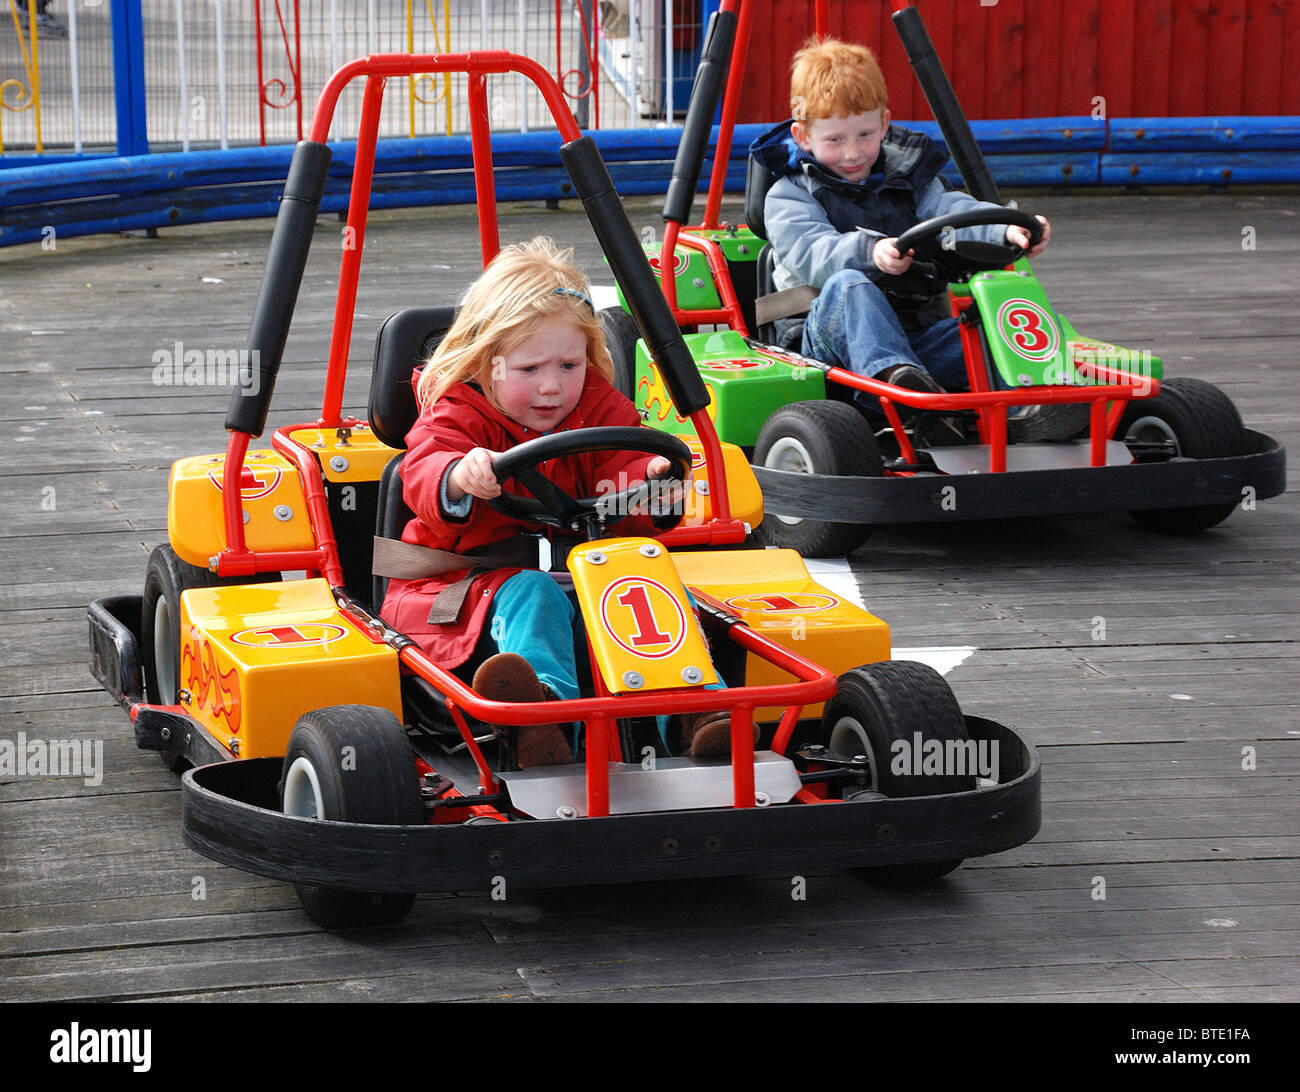 Go Karts Stock Photos & Go Karts Stock Images - Alamy